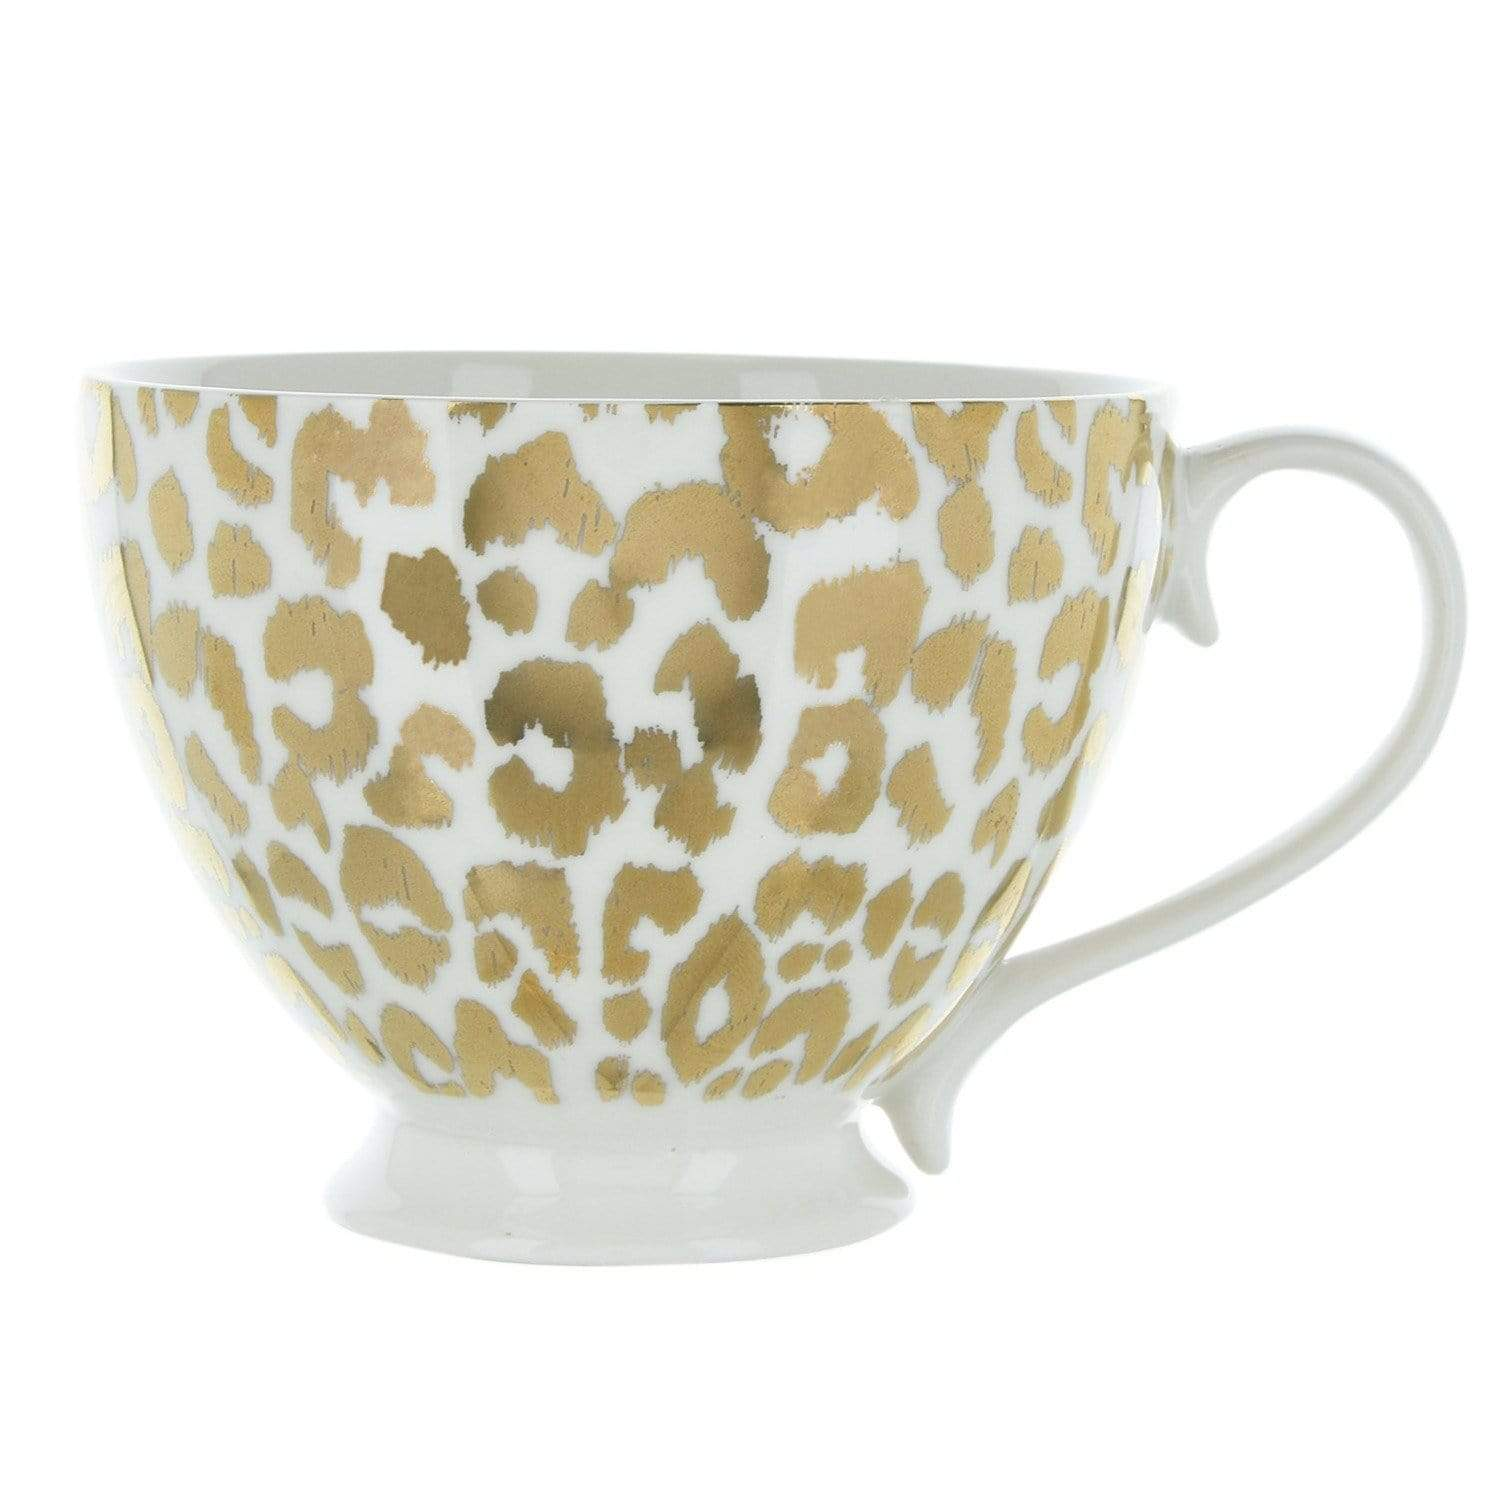 Candlelight Home Mug Animal Luxe Footed Mug Leopard Print Gold 6PK